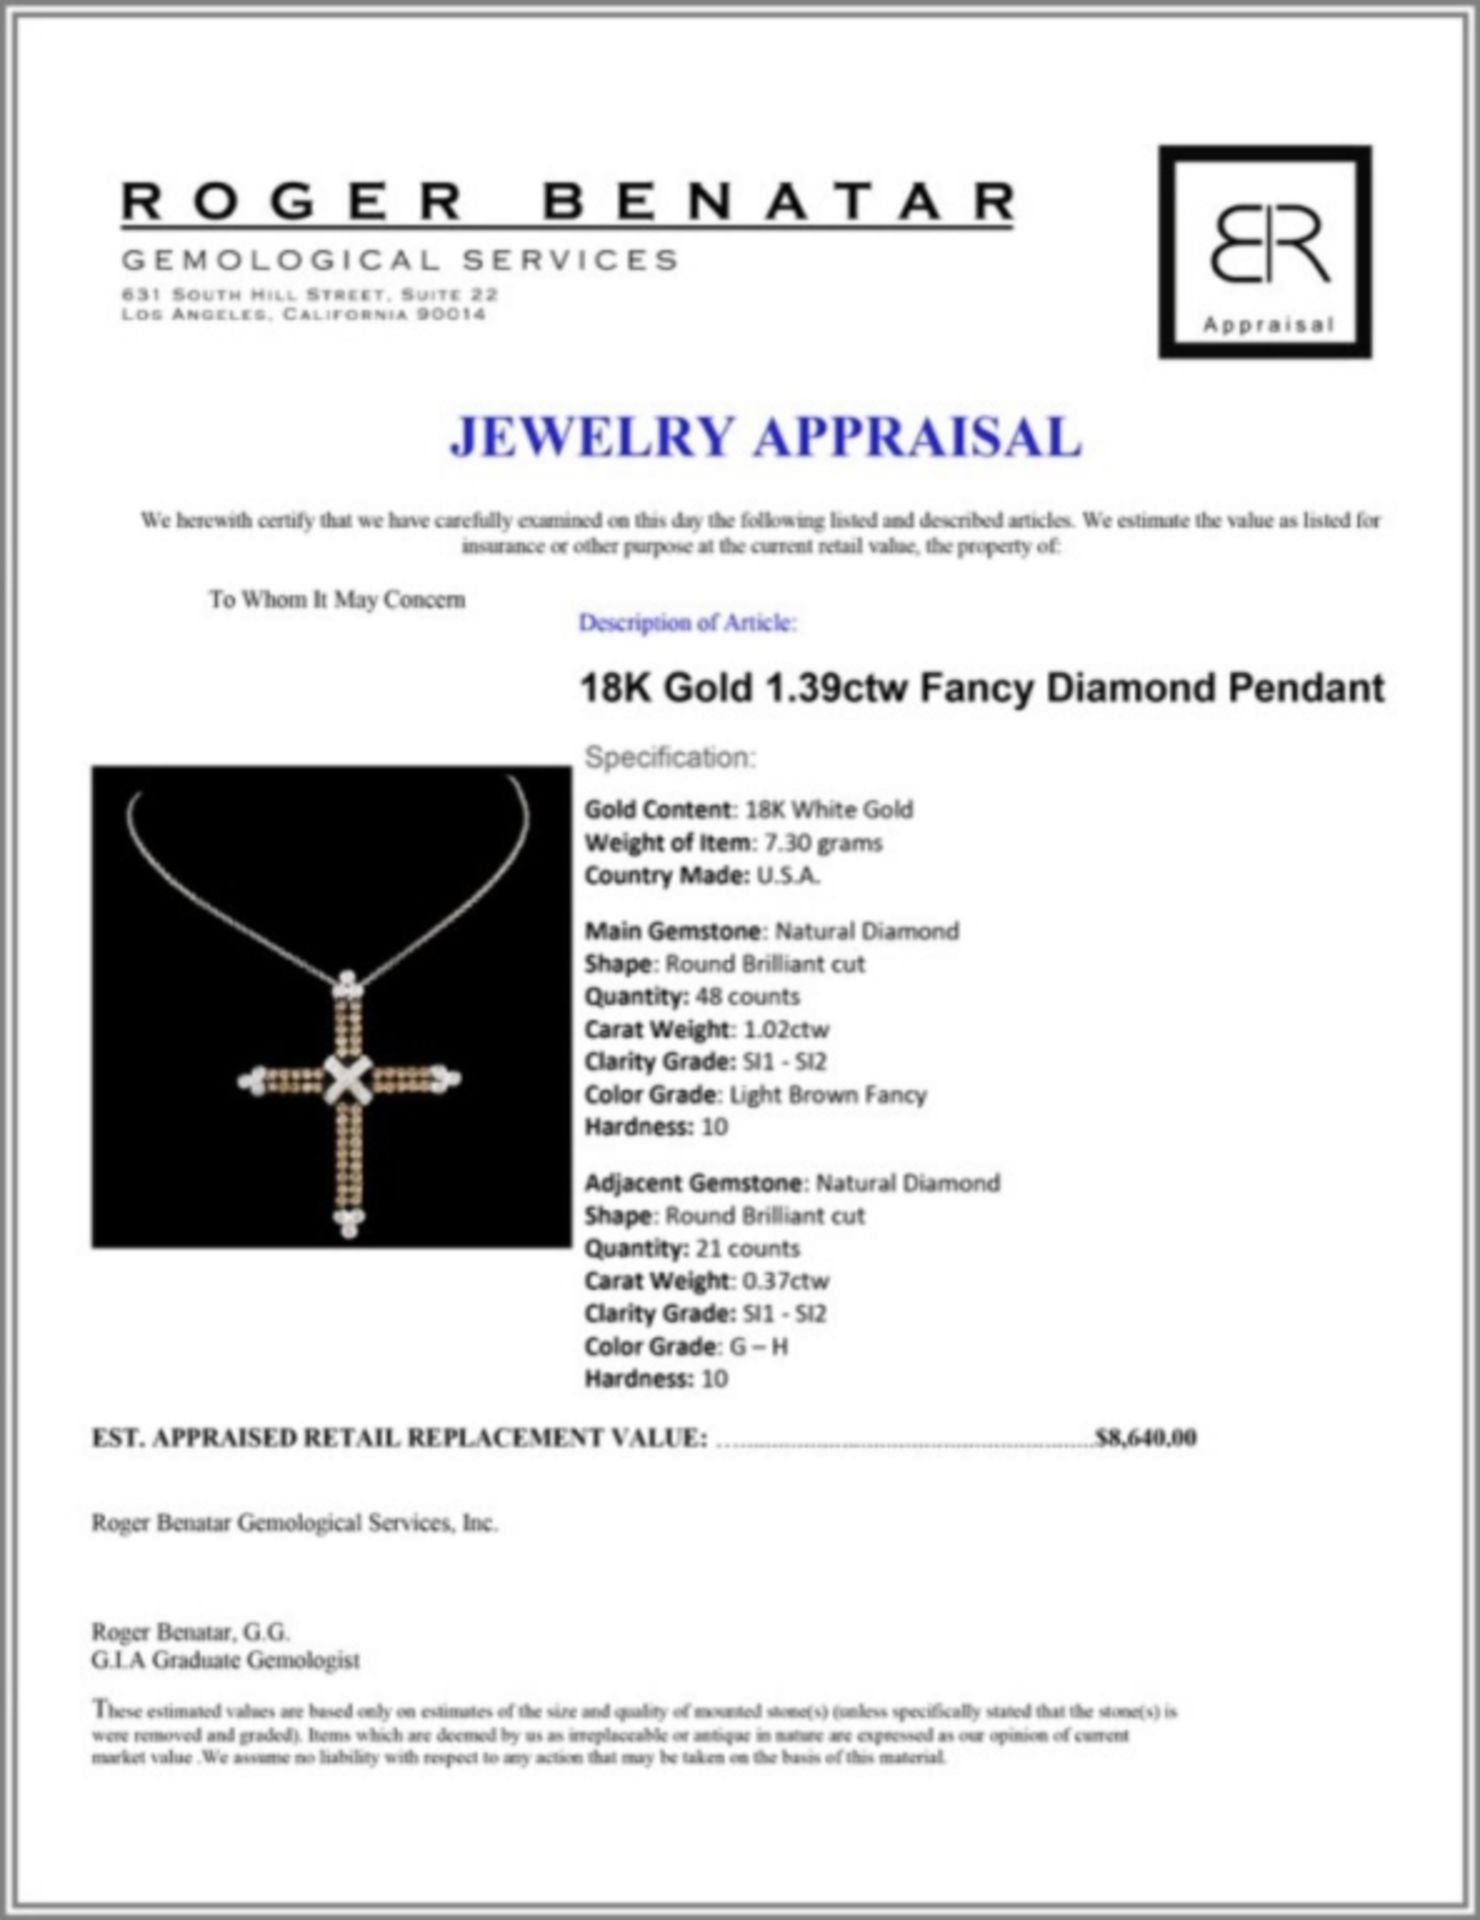 18K Gold 1.39ctw Fancy Diamond Pendant - Image 3 of 3